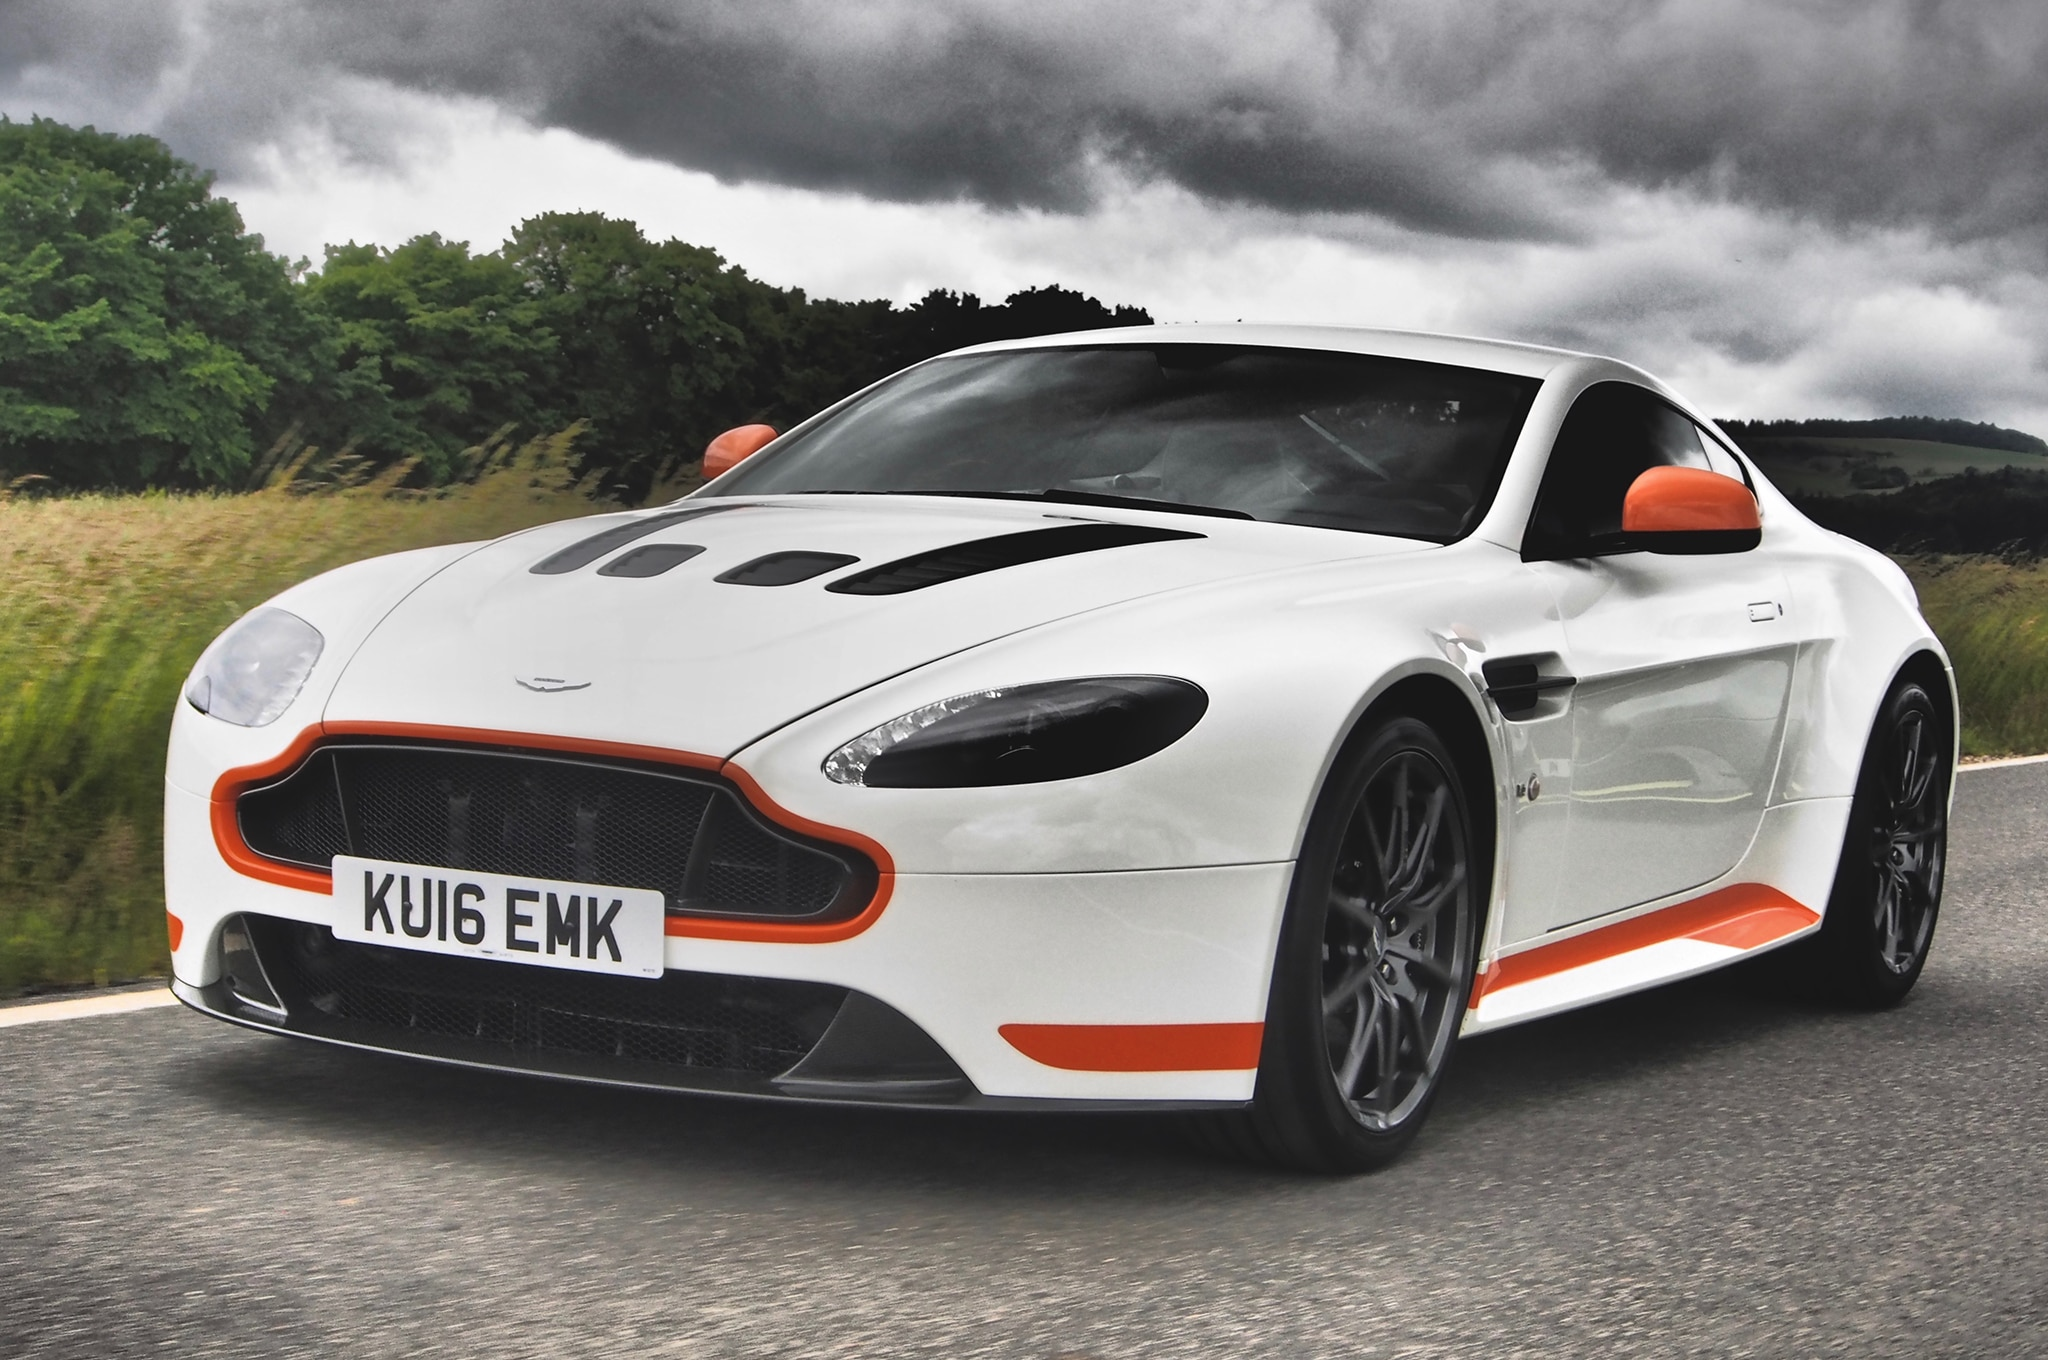 2017 Aston Martin V12 Vantage S Front Three Quarters In Motion